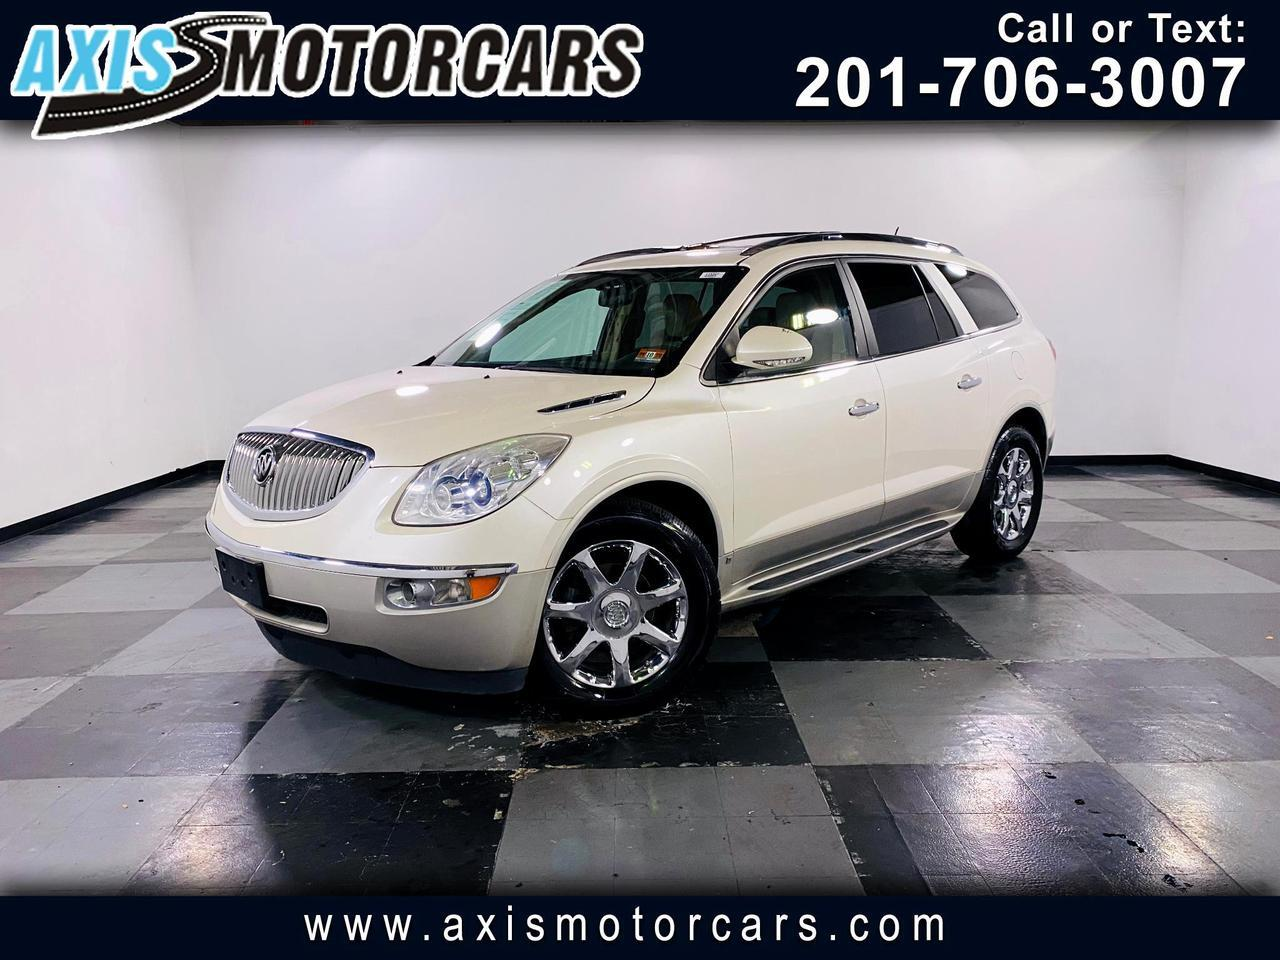 2010 Buick Enclave 4dr CXL w/Backup Camera Panoramic Roof Jersey City NJ